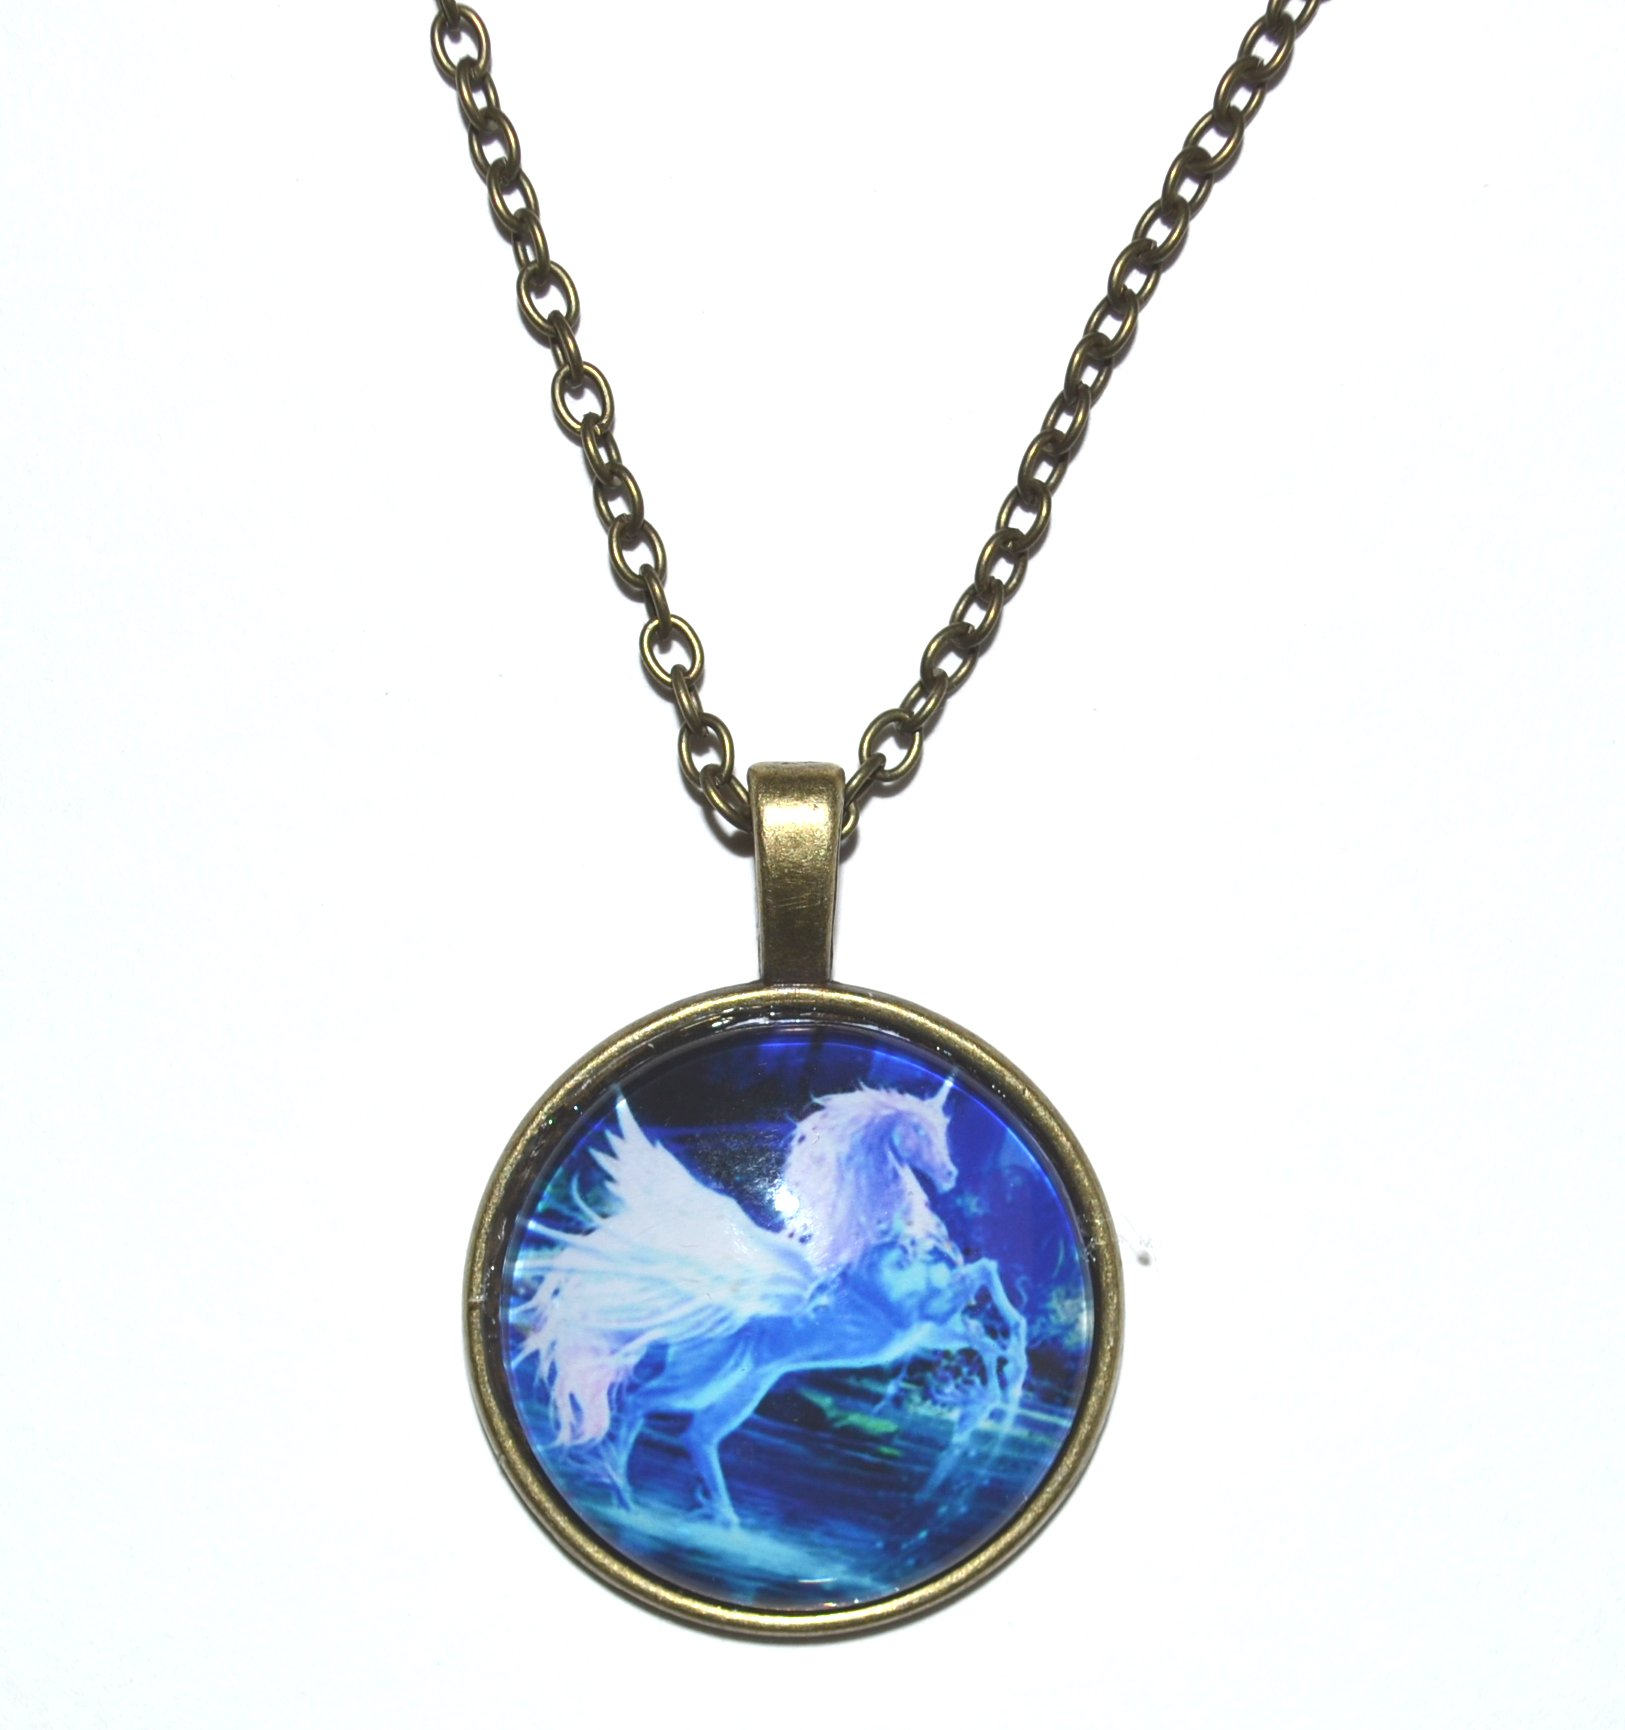 authorized pendant pandora necklace unicorn outlet